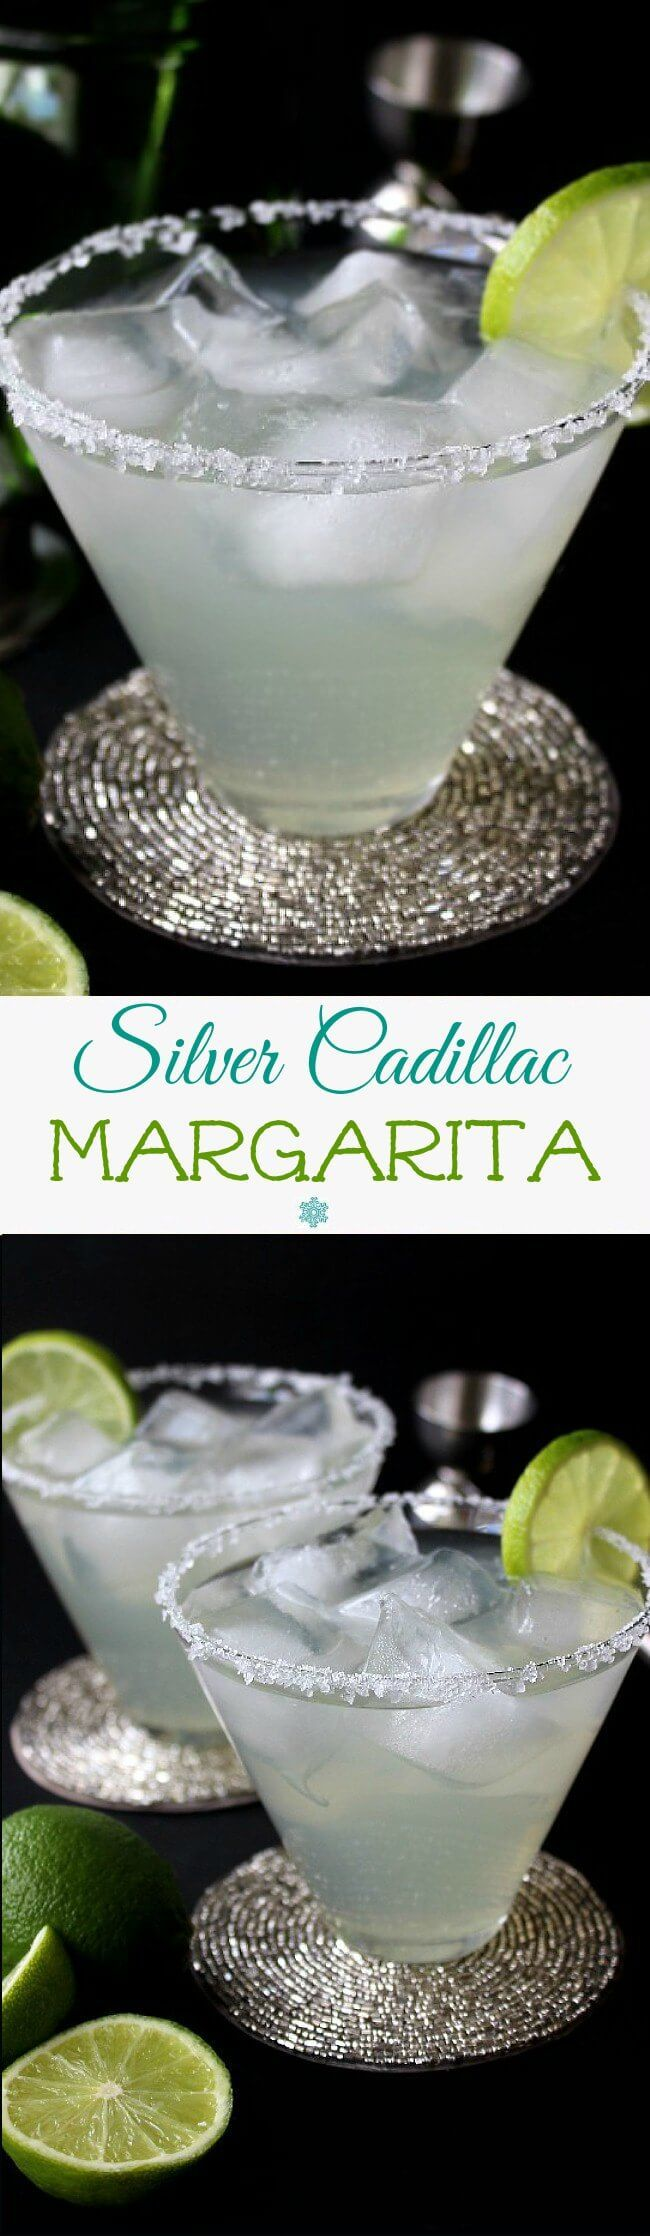 Silver Cadillac Margarita is a simple cocktail with a perfect balance of 5 special ingredients. Serve on the rocks or sip it with a straw. Either way it will go great with any Mexican style meal or holiday. It's a keeper!